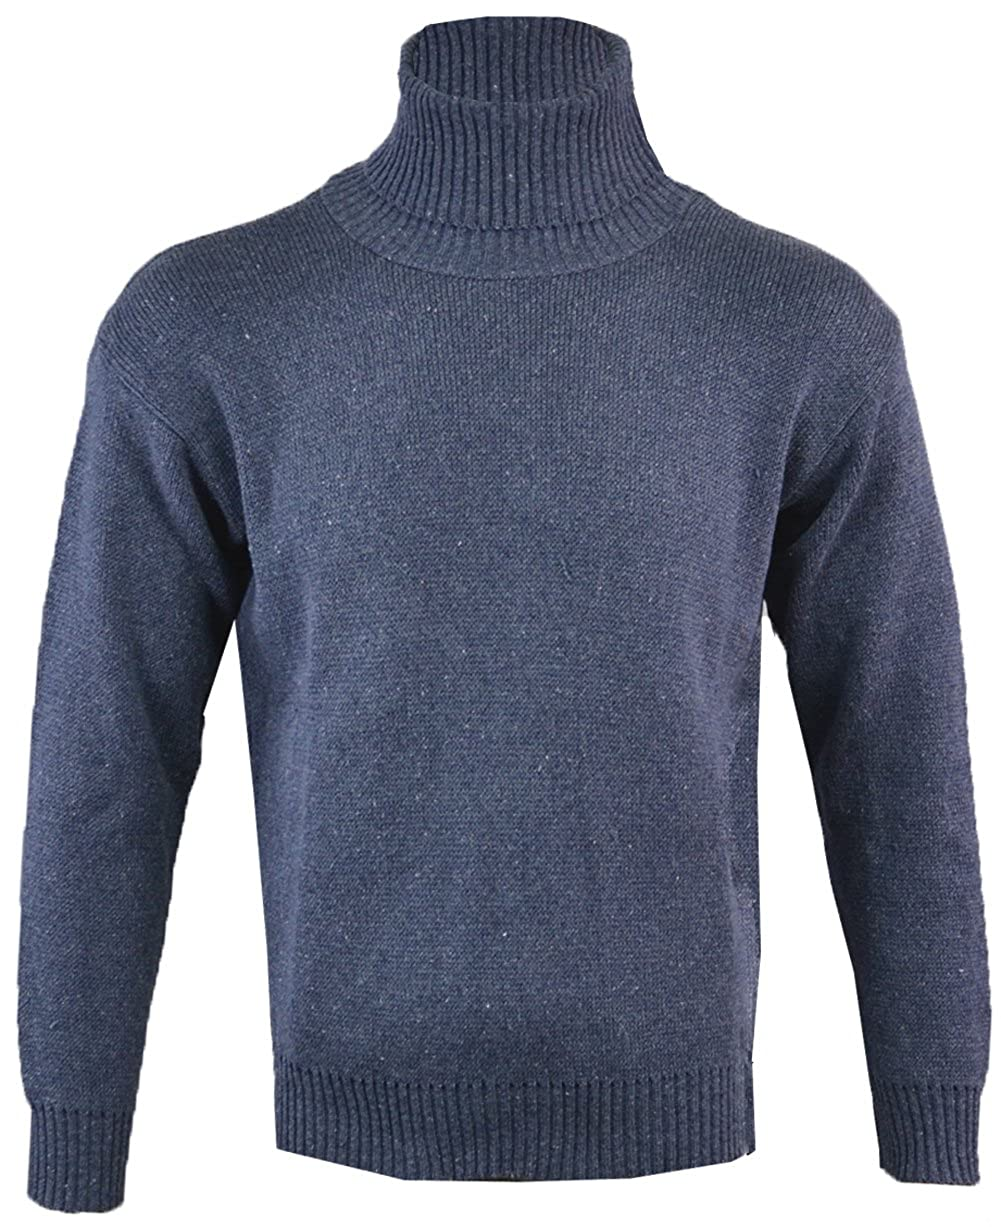 c396ce9752a Clothing Unit Mens Roll Neck Polo Knitted Jumper: Amazon.co.uk: Clothing